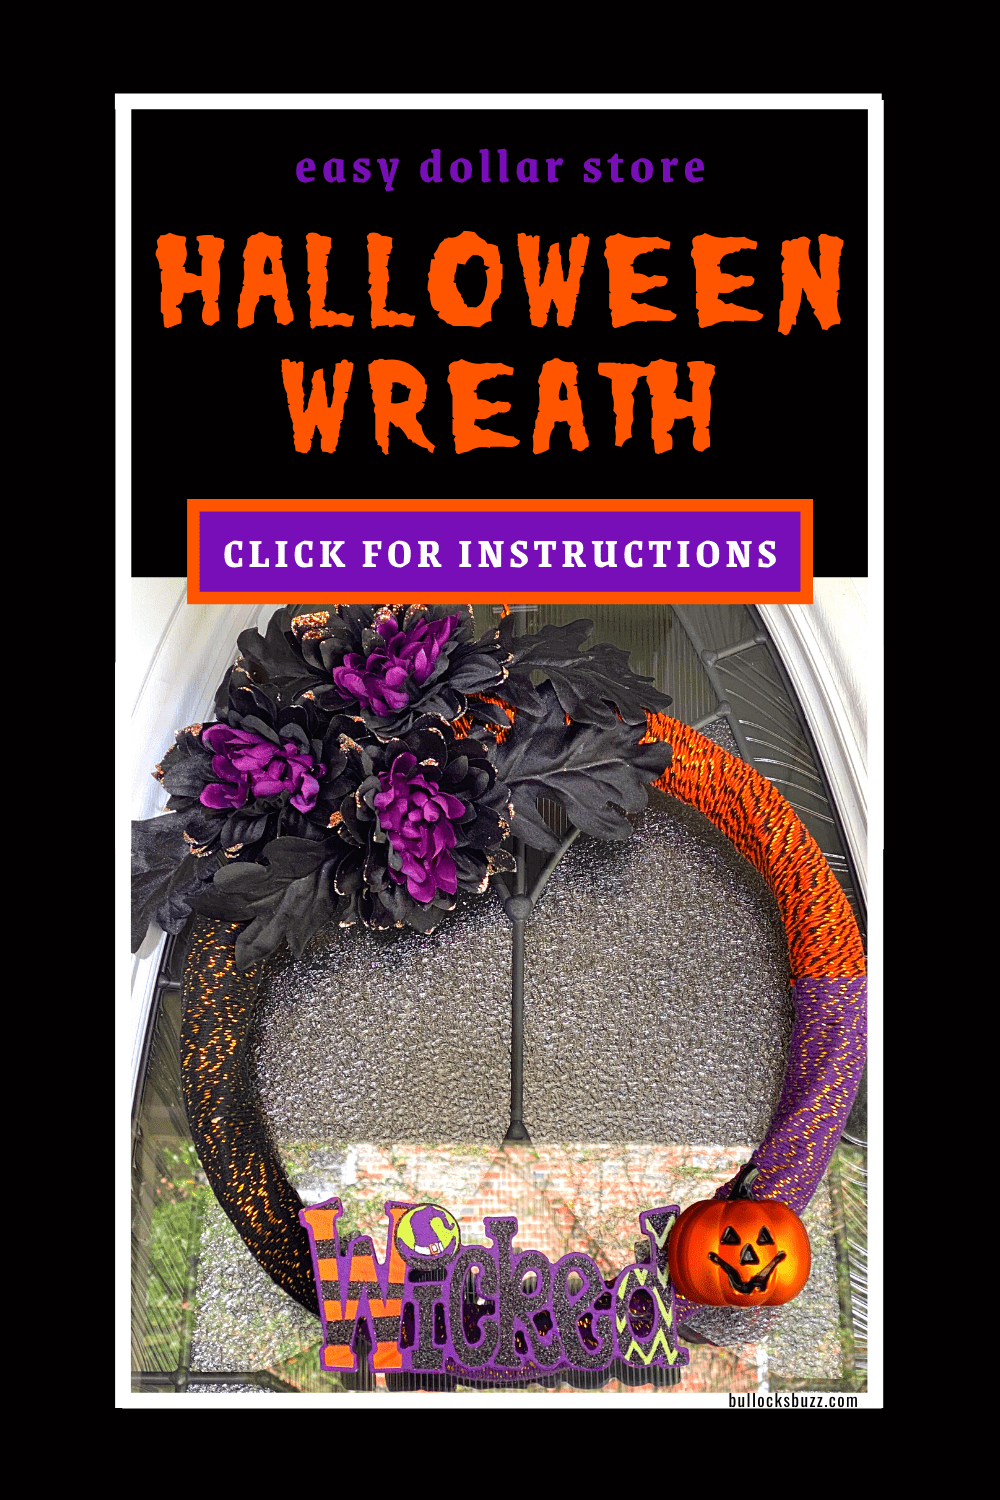 This easy and inexpensive DIY Halloween Wreath idea is a super simple dollar store decor project! It's so pretty and cute, your friends will be dying to know where you bought it!